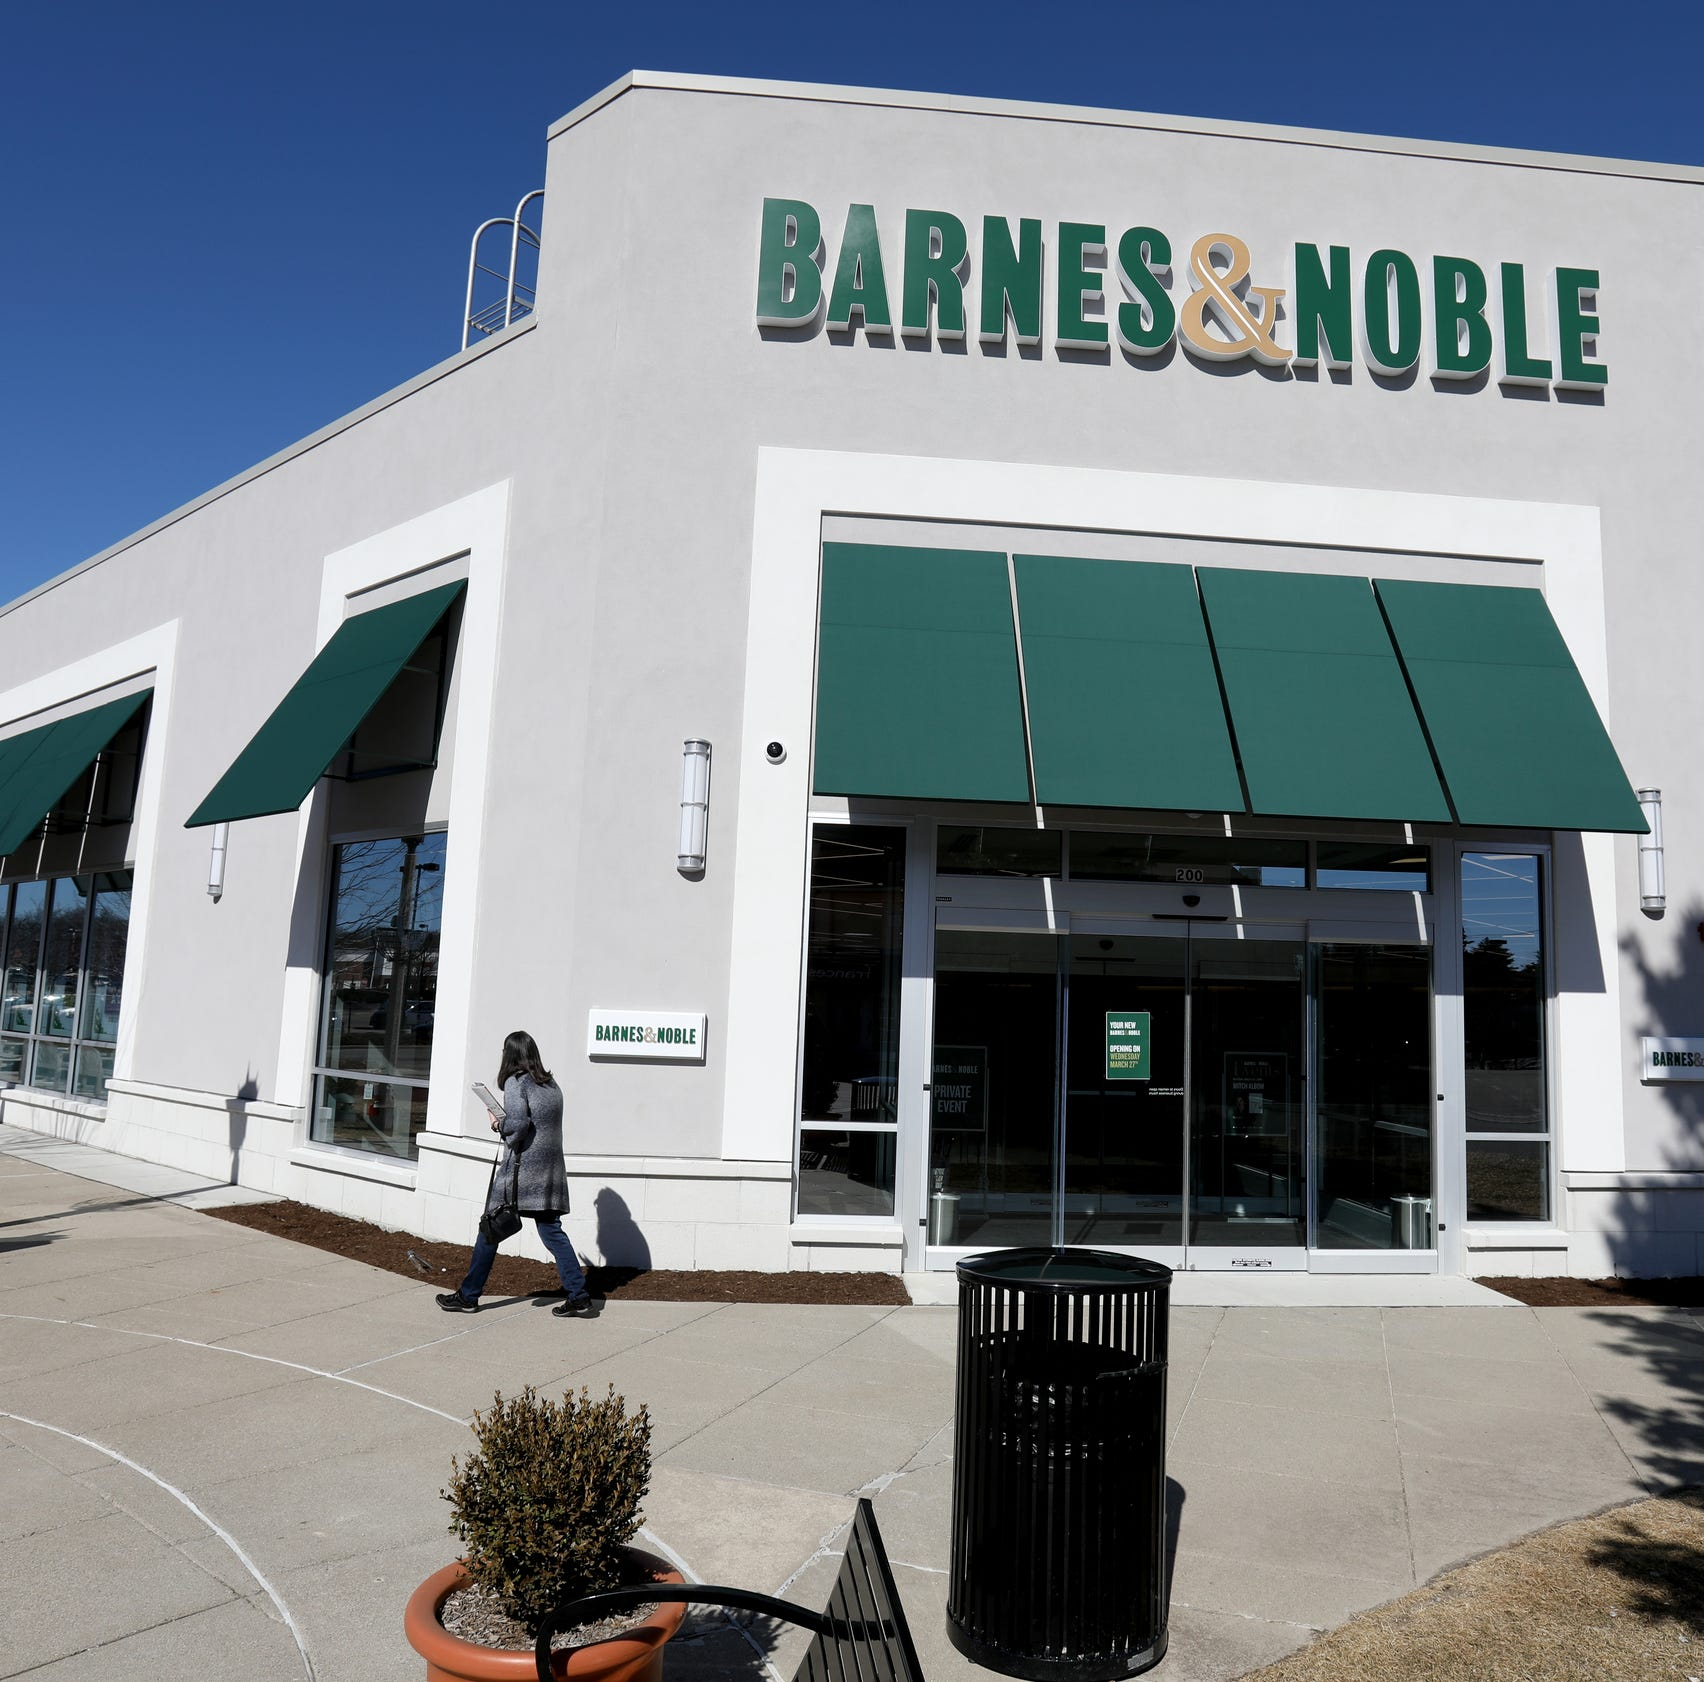 Barnes & Noble about to open first of its kind store in Michigan